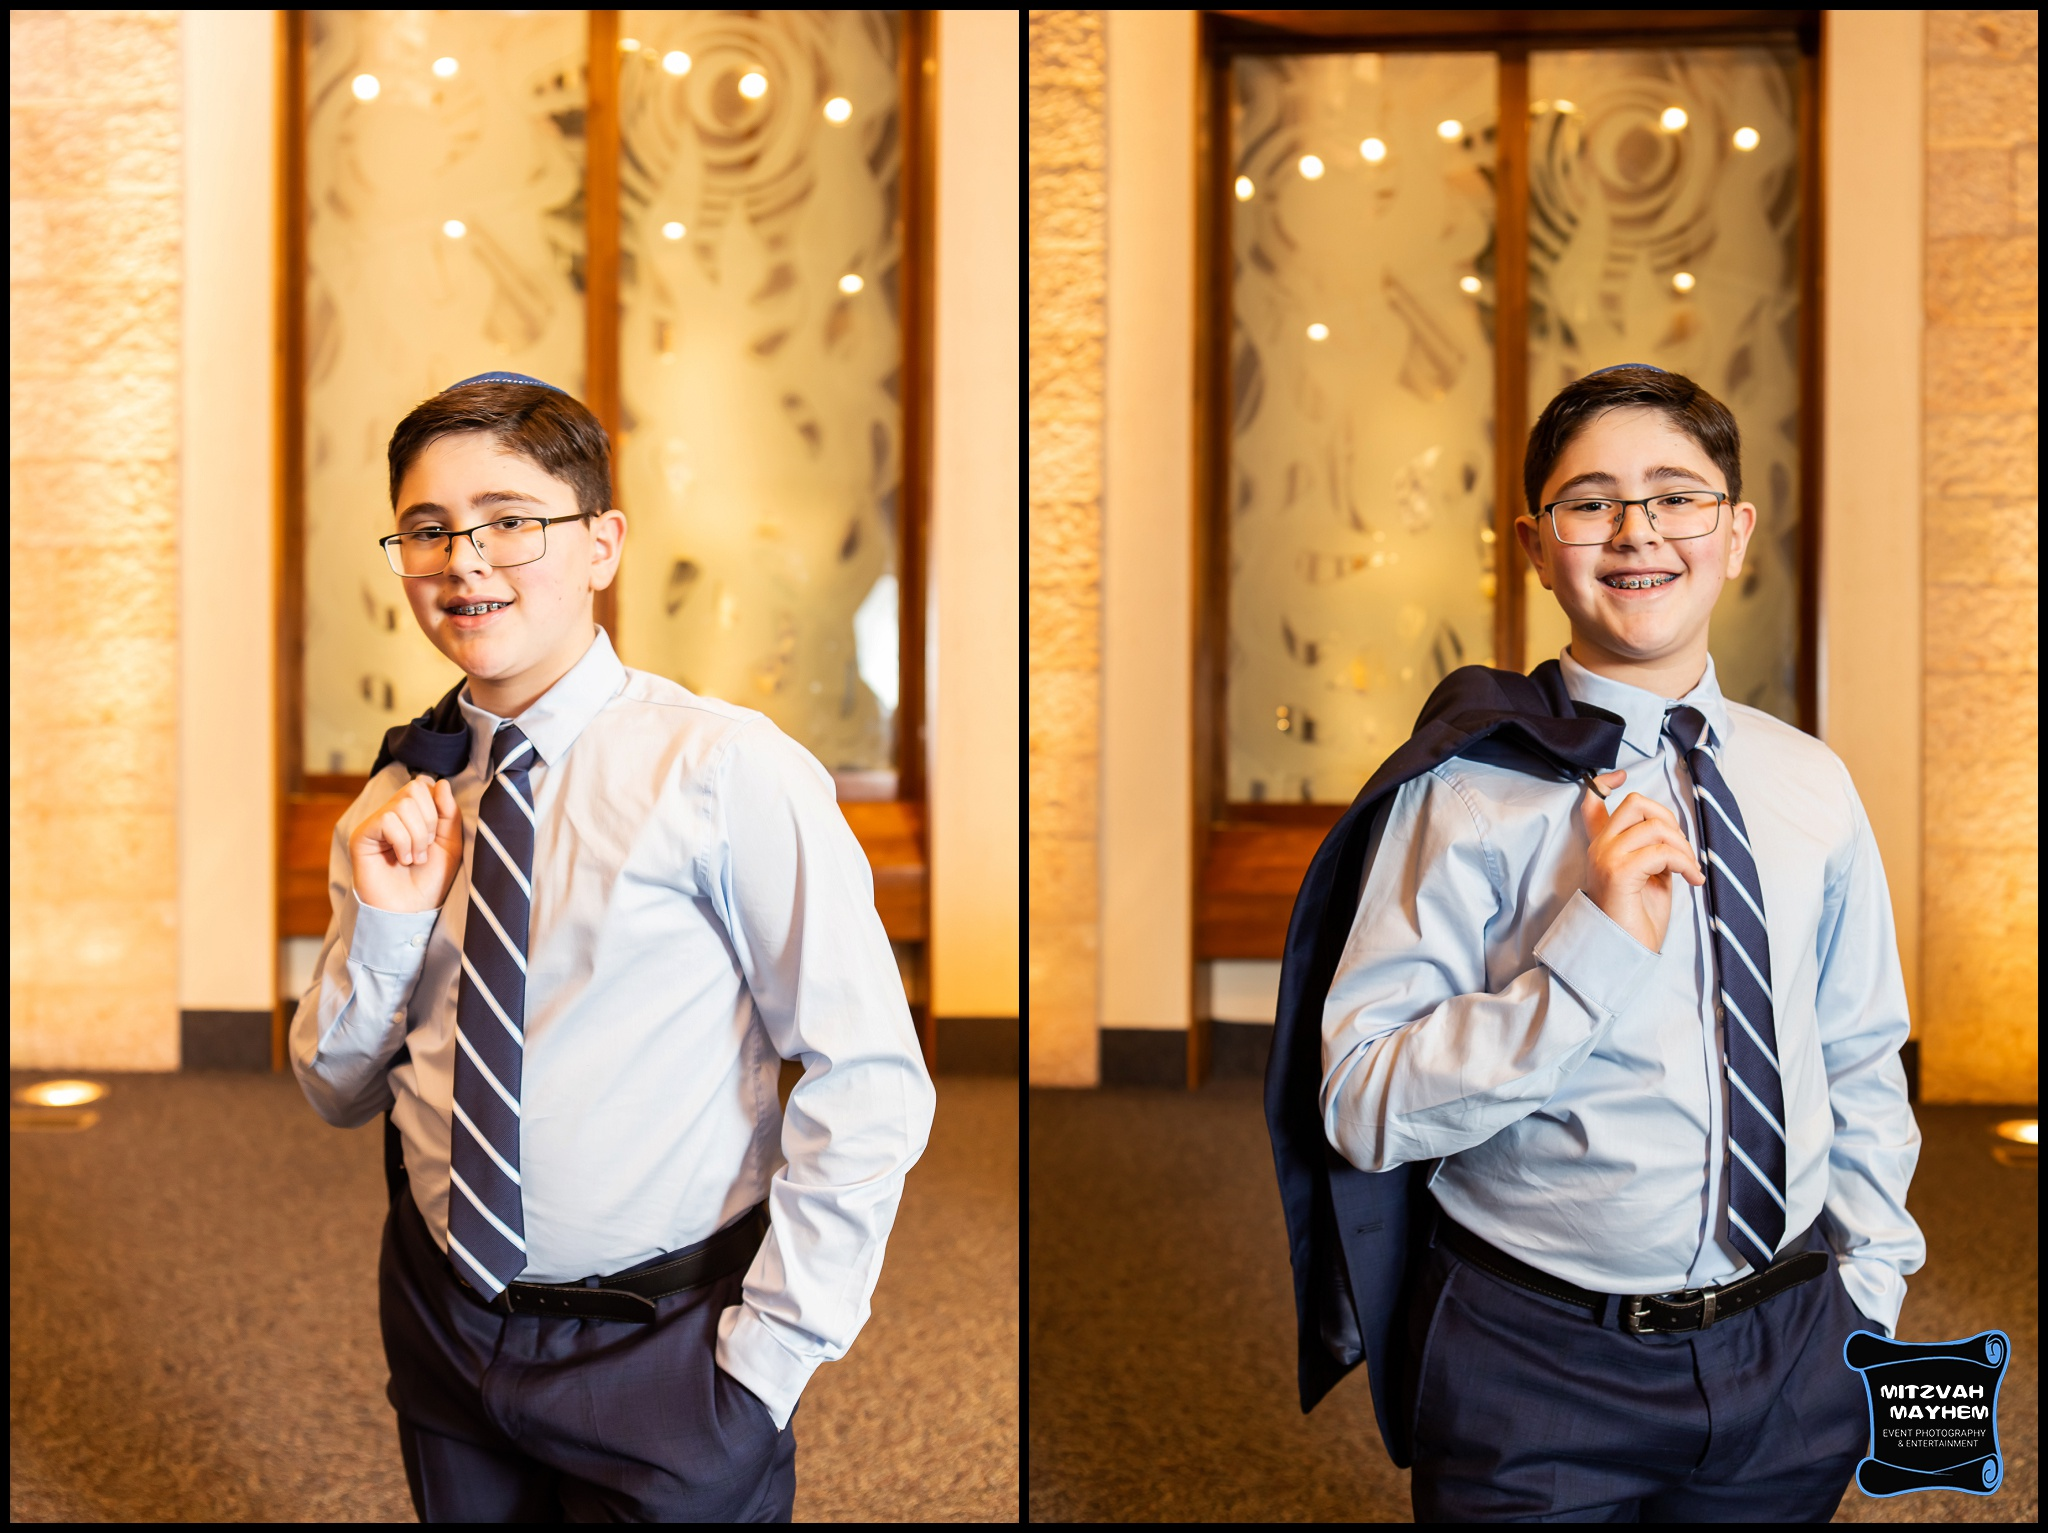 nj-mitzvah-photographer-jacques-caterers-13.JPG